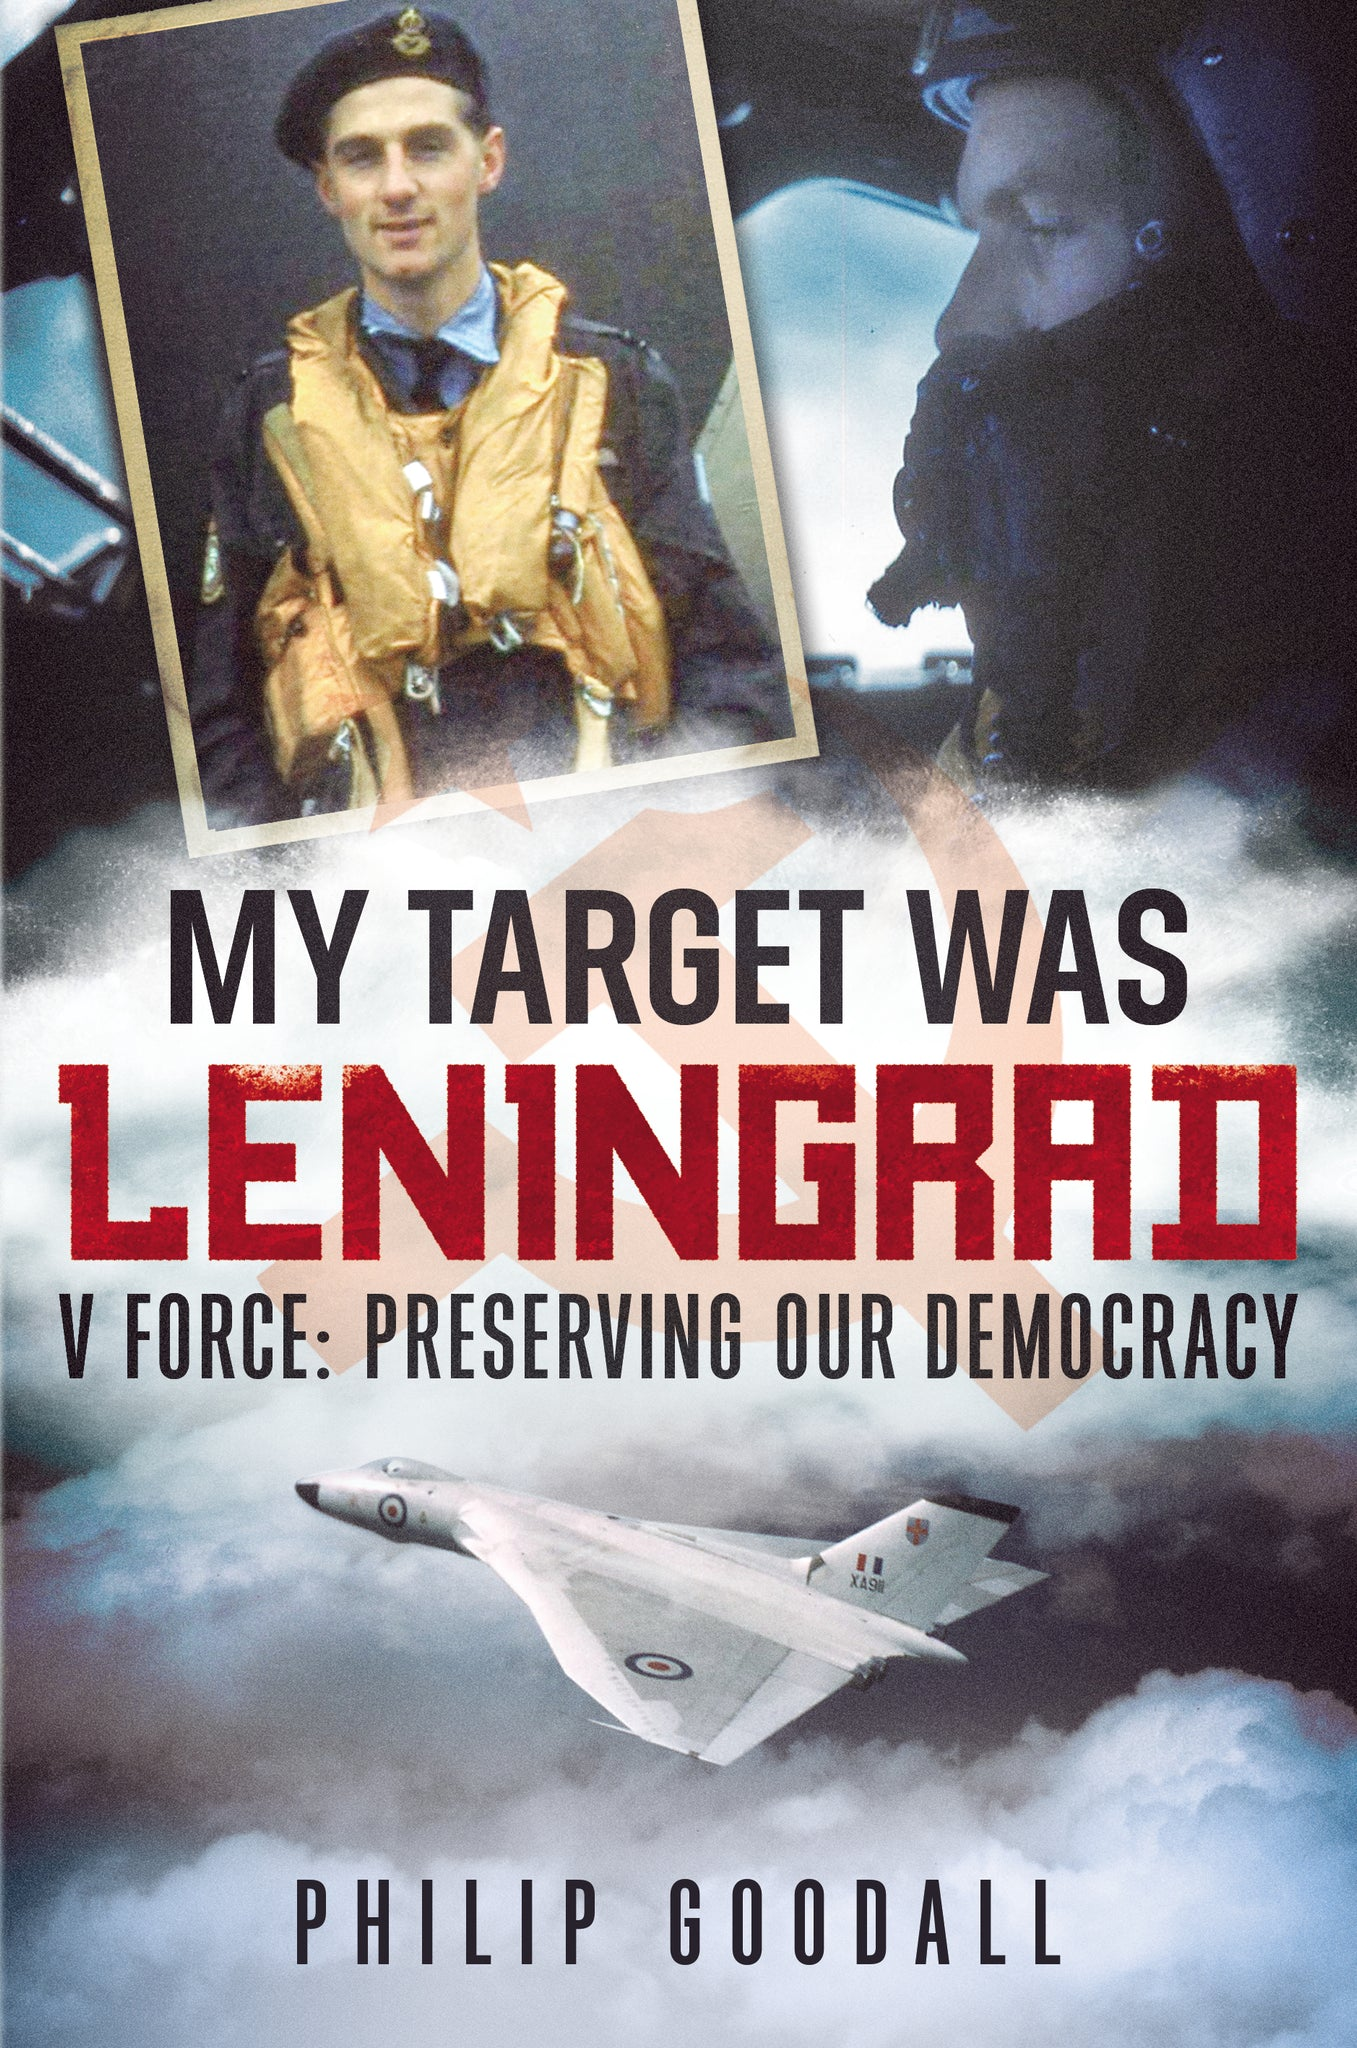 My Target Was Leningrad - V Force: Preserving our Democracy